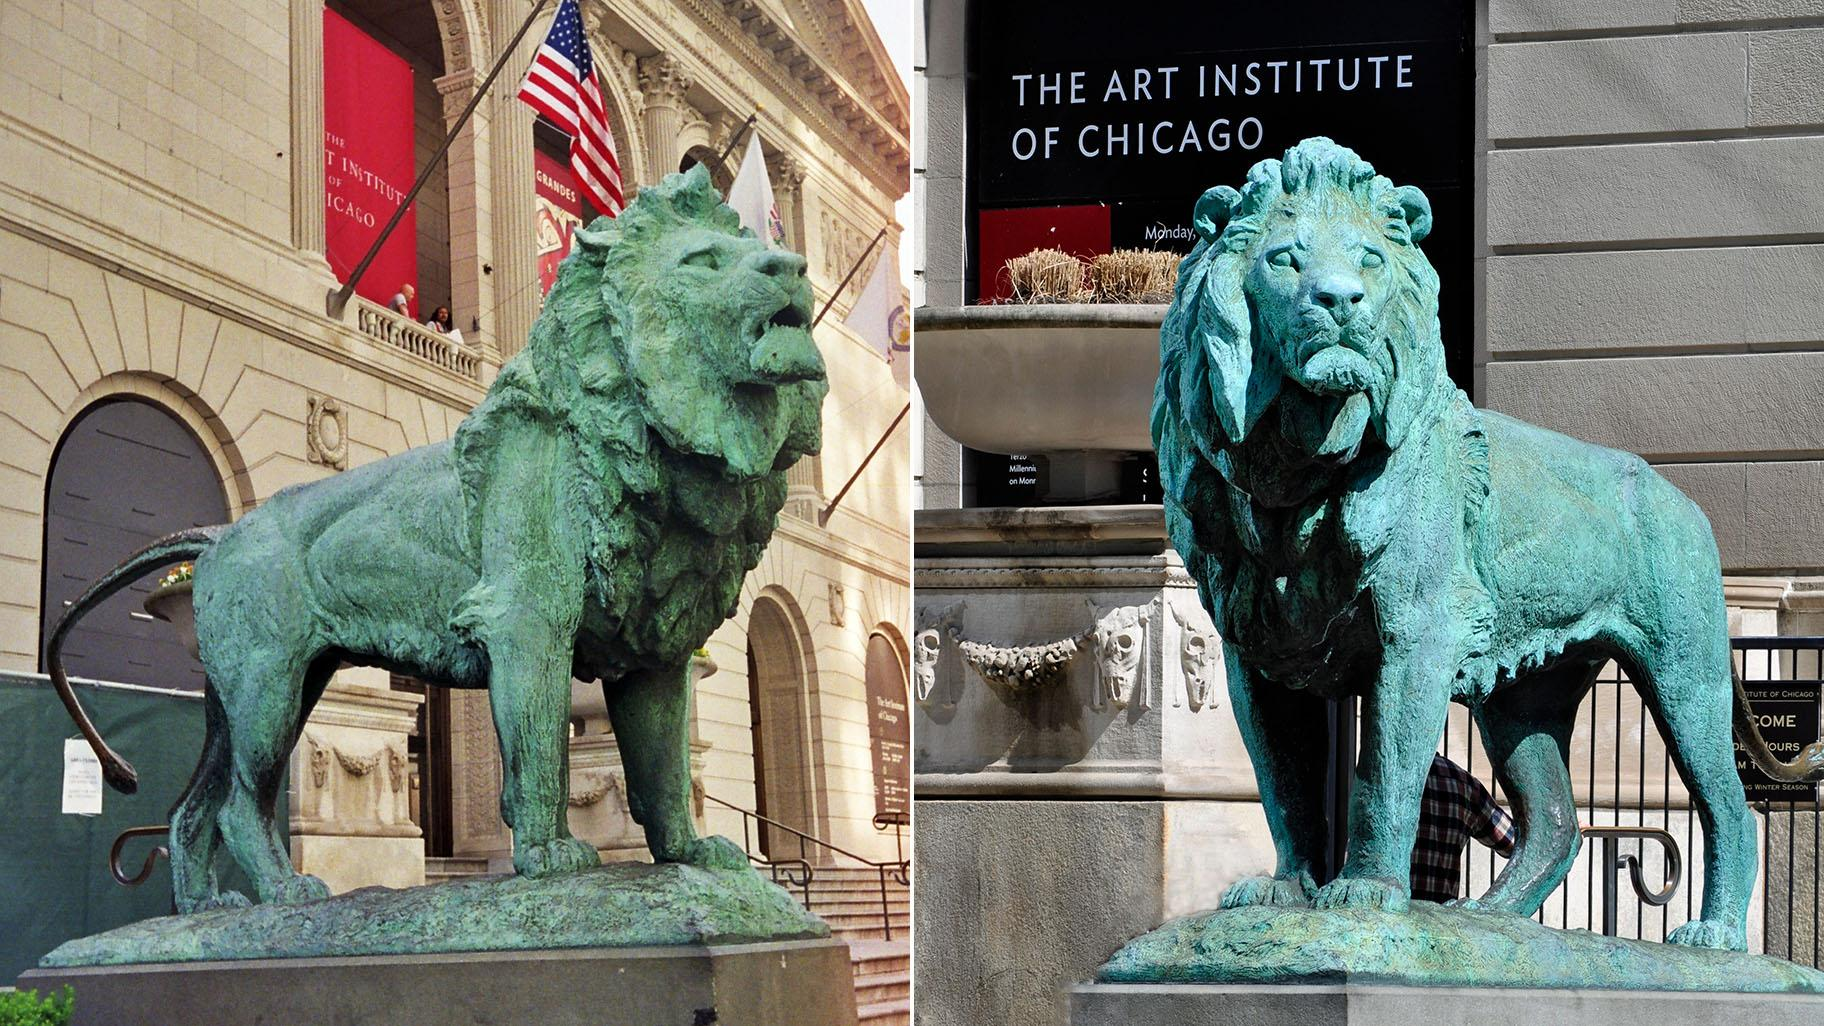 The north lion, left, and south lion at the Art Institute of Chicago. (Credit: Kim Scarborough / Wikimedia Commons; Heather Paul / Flickr)